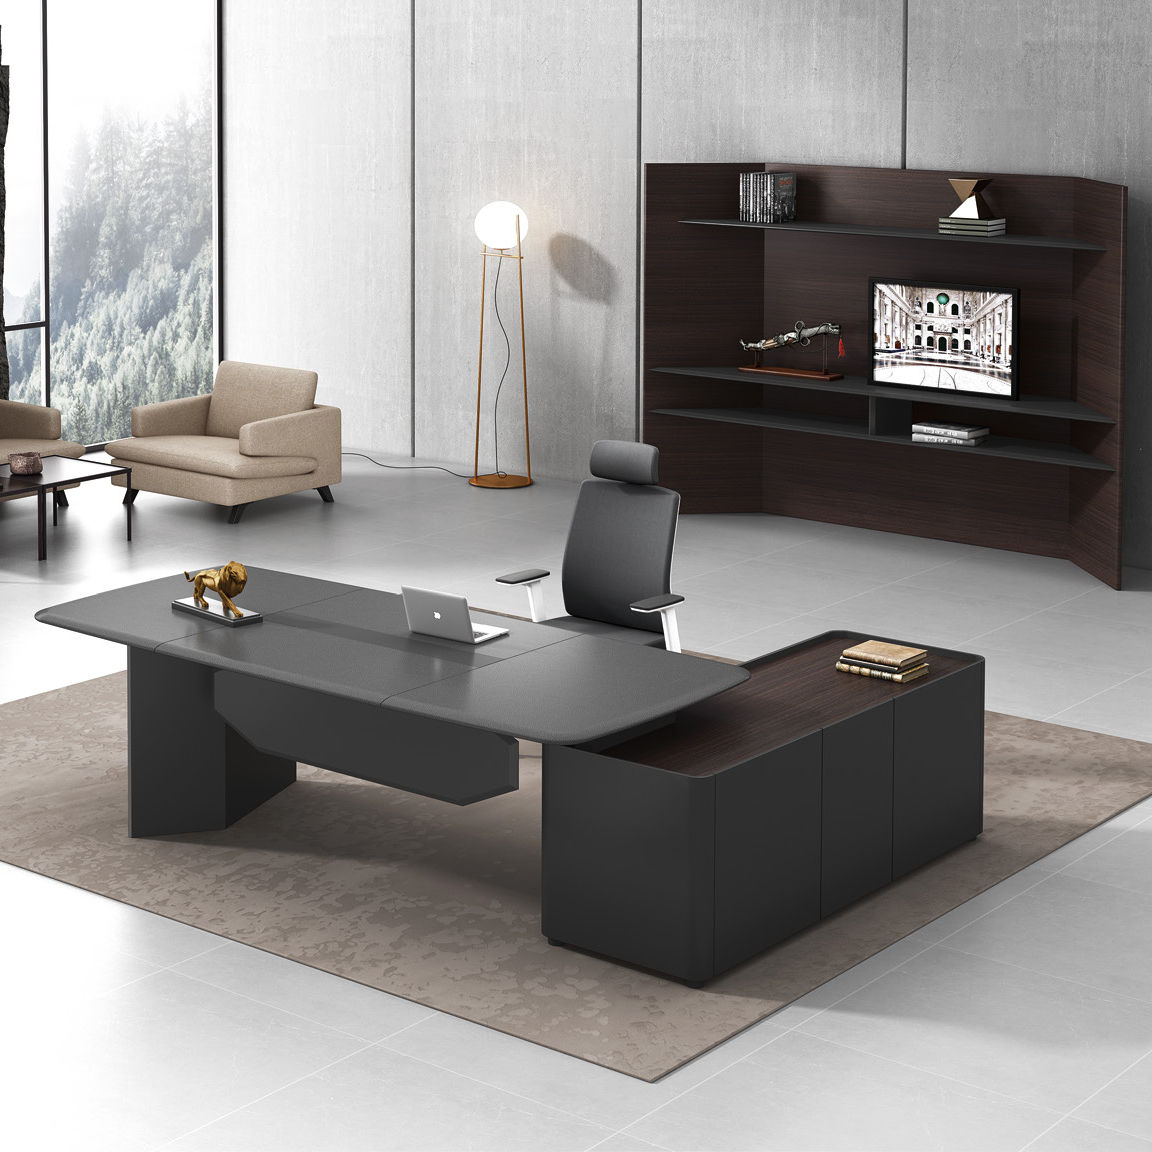 Commercial Executive Office Furniture 2.4m Luxury Modern Design Boss Leather Office Desk